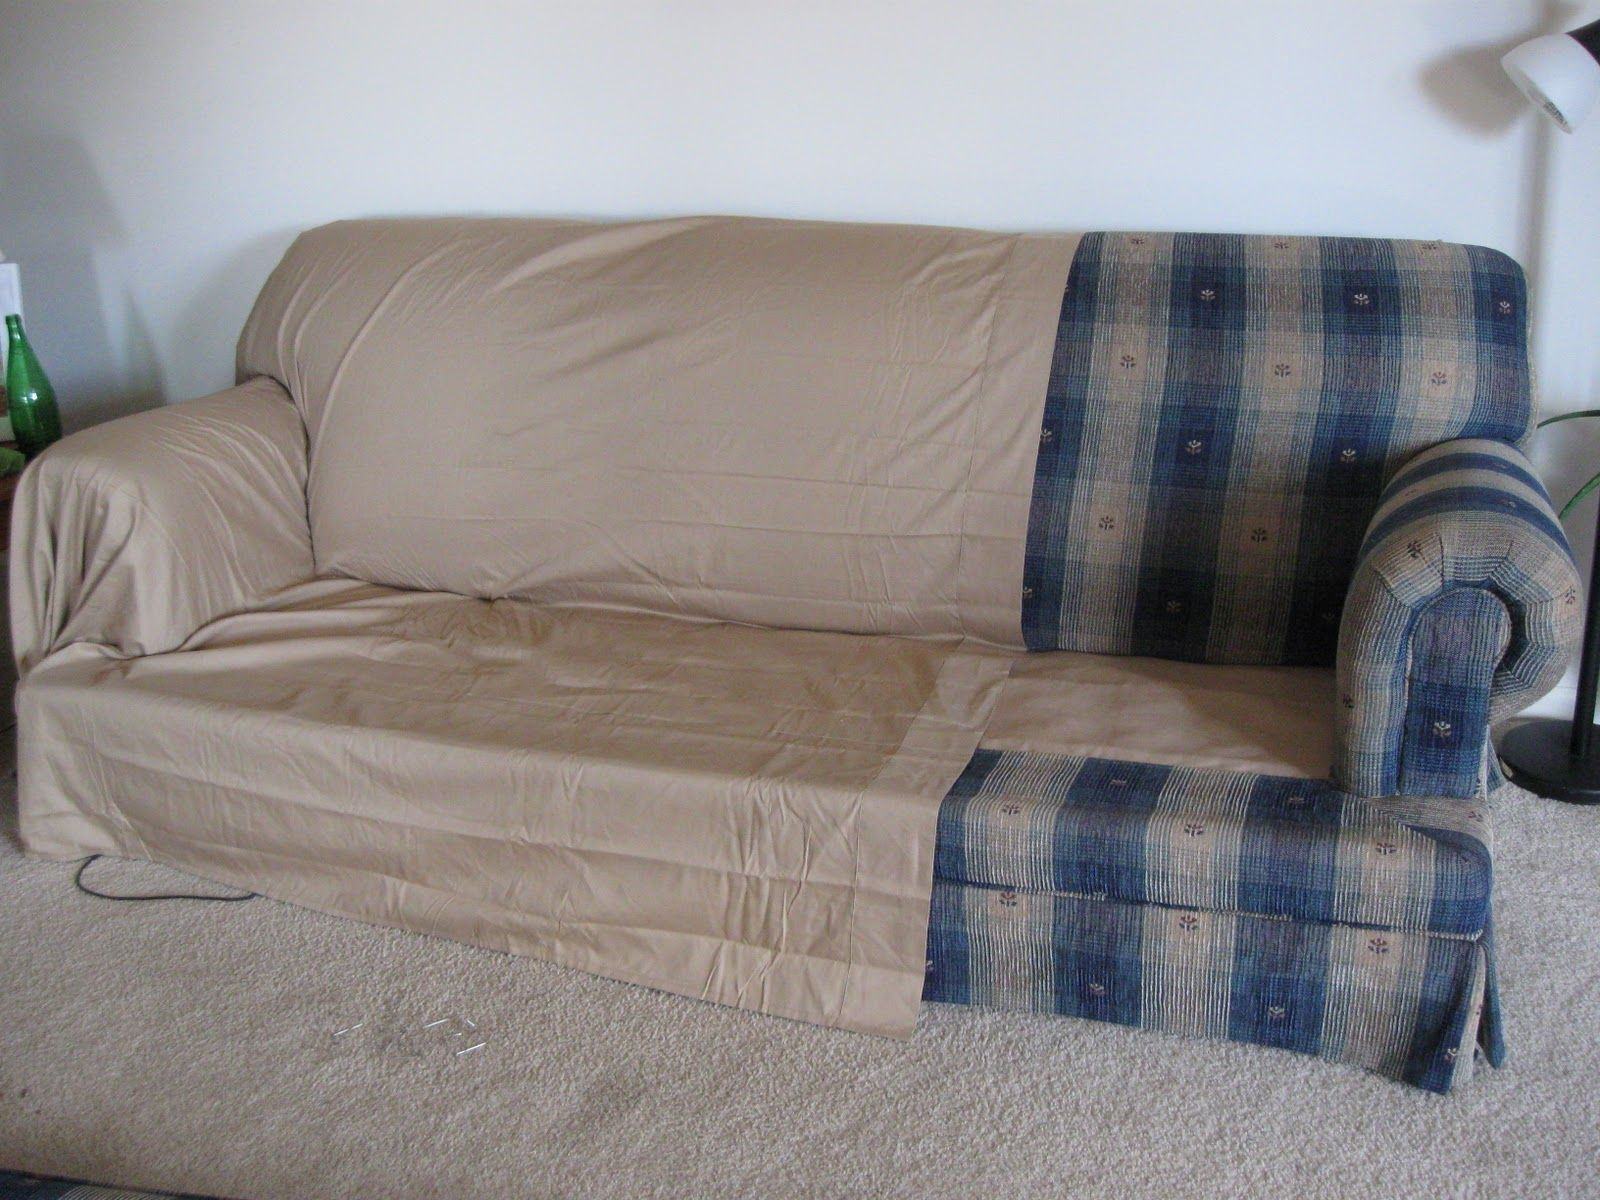 diy sofa repair modern grey corner making couch covers from two queen bed sheets and